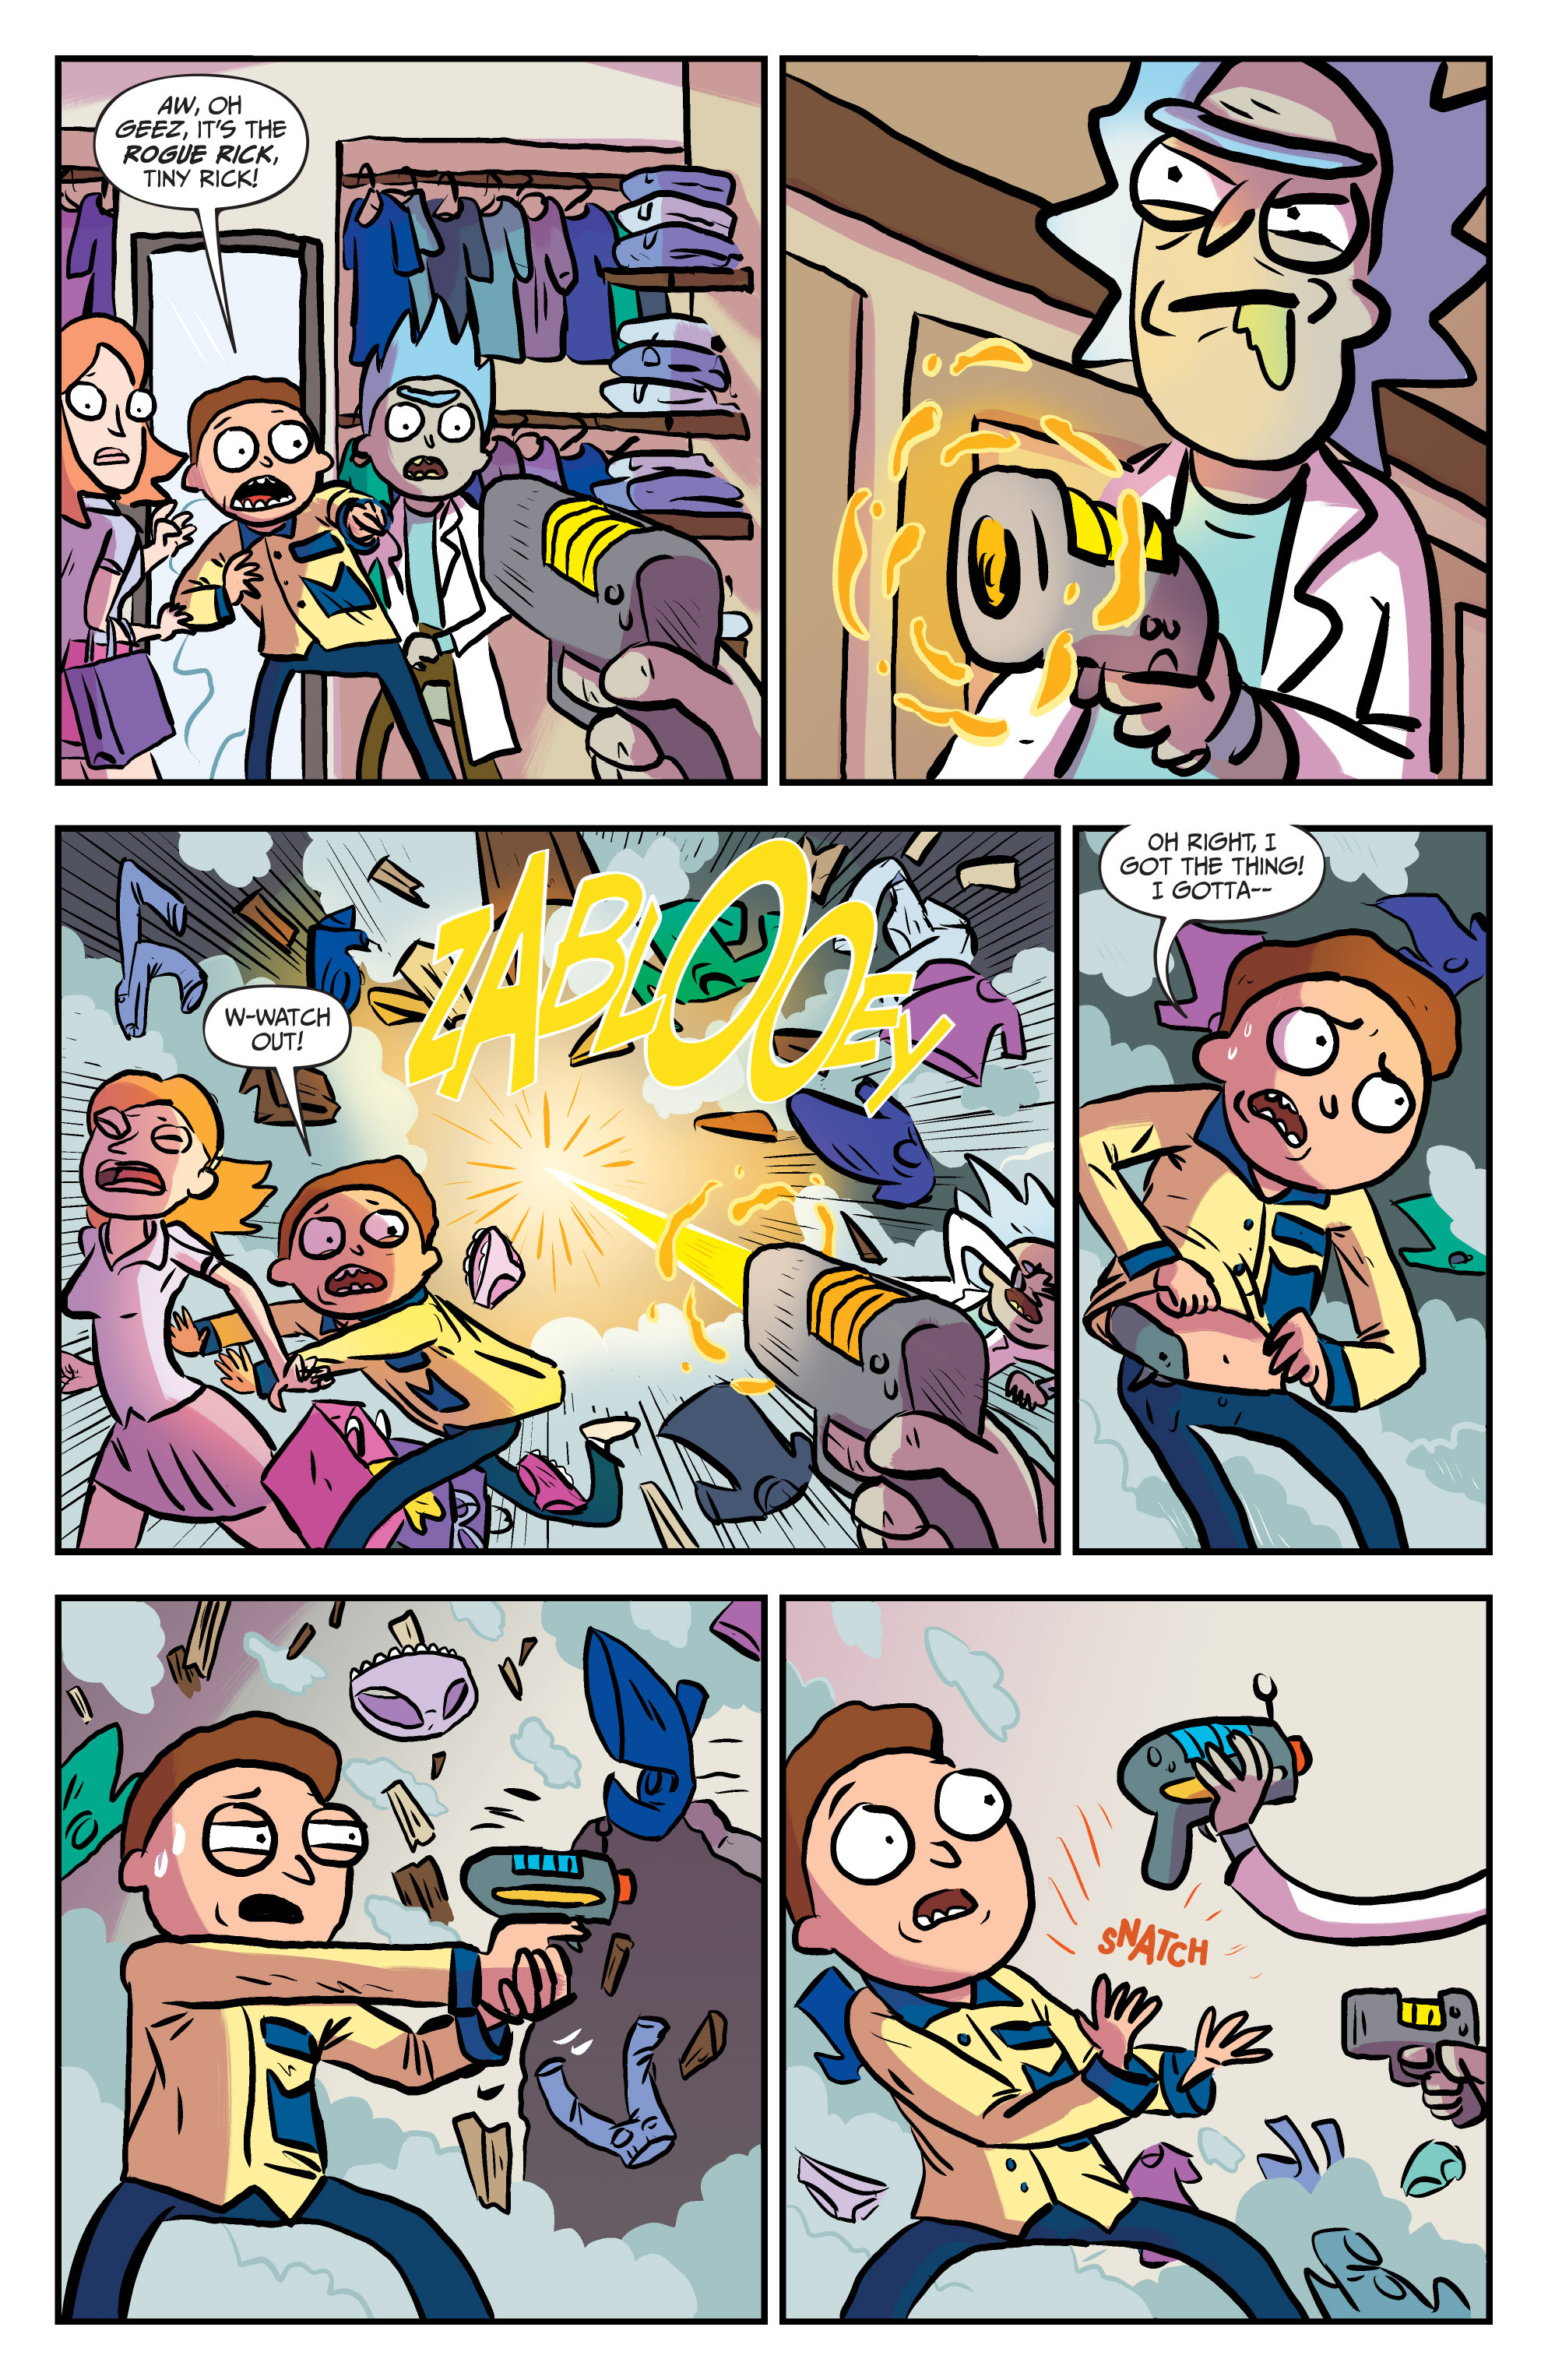 Read online Rick and Morty comic -  Issue #25 - 10